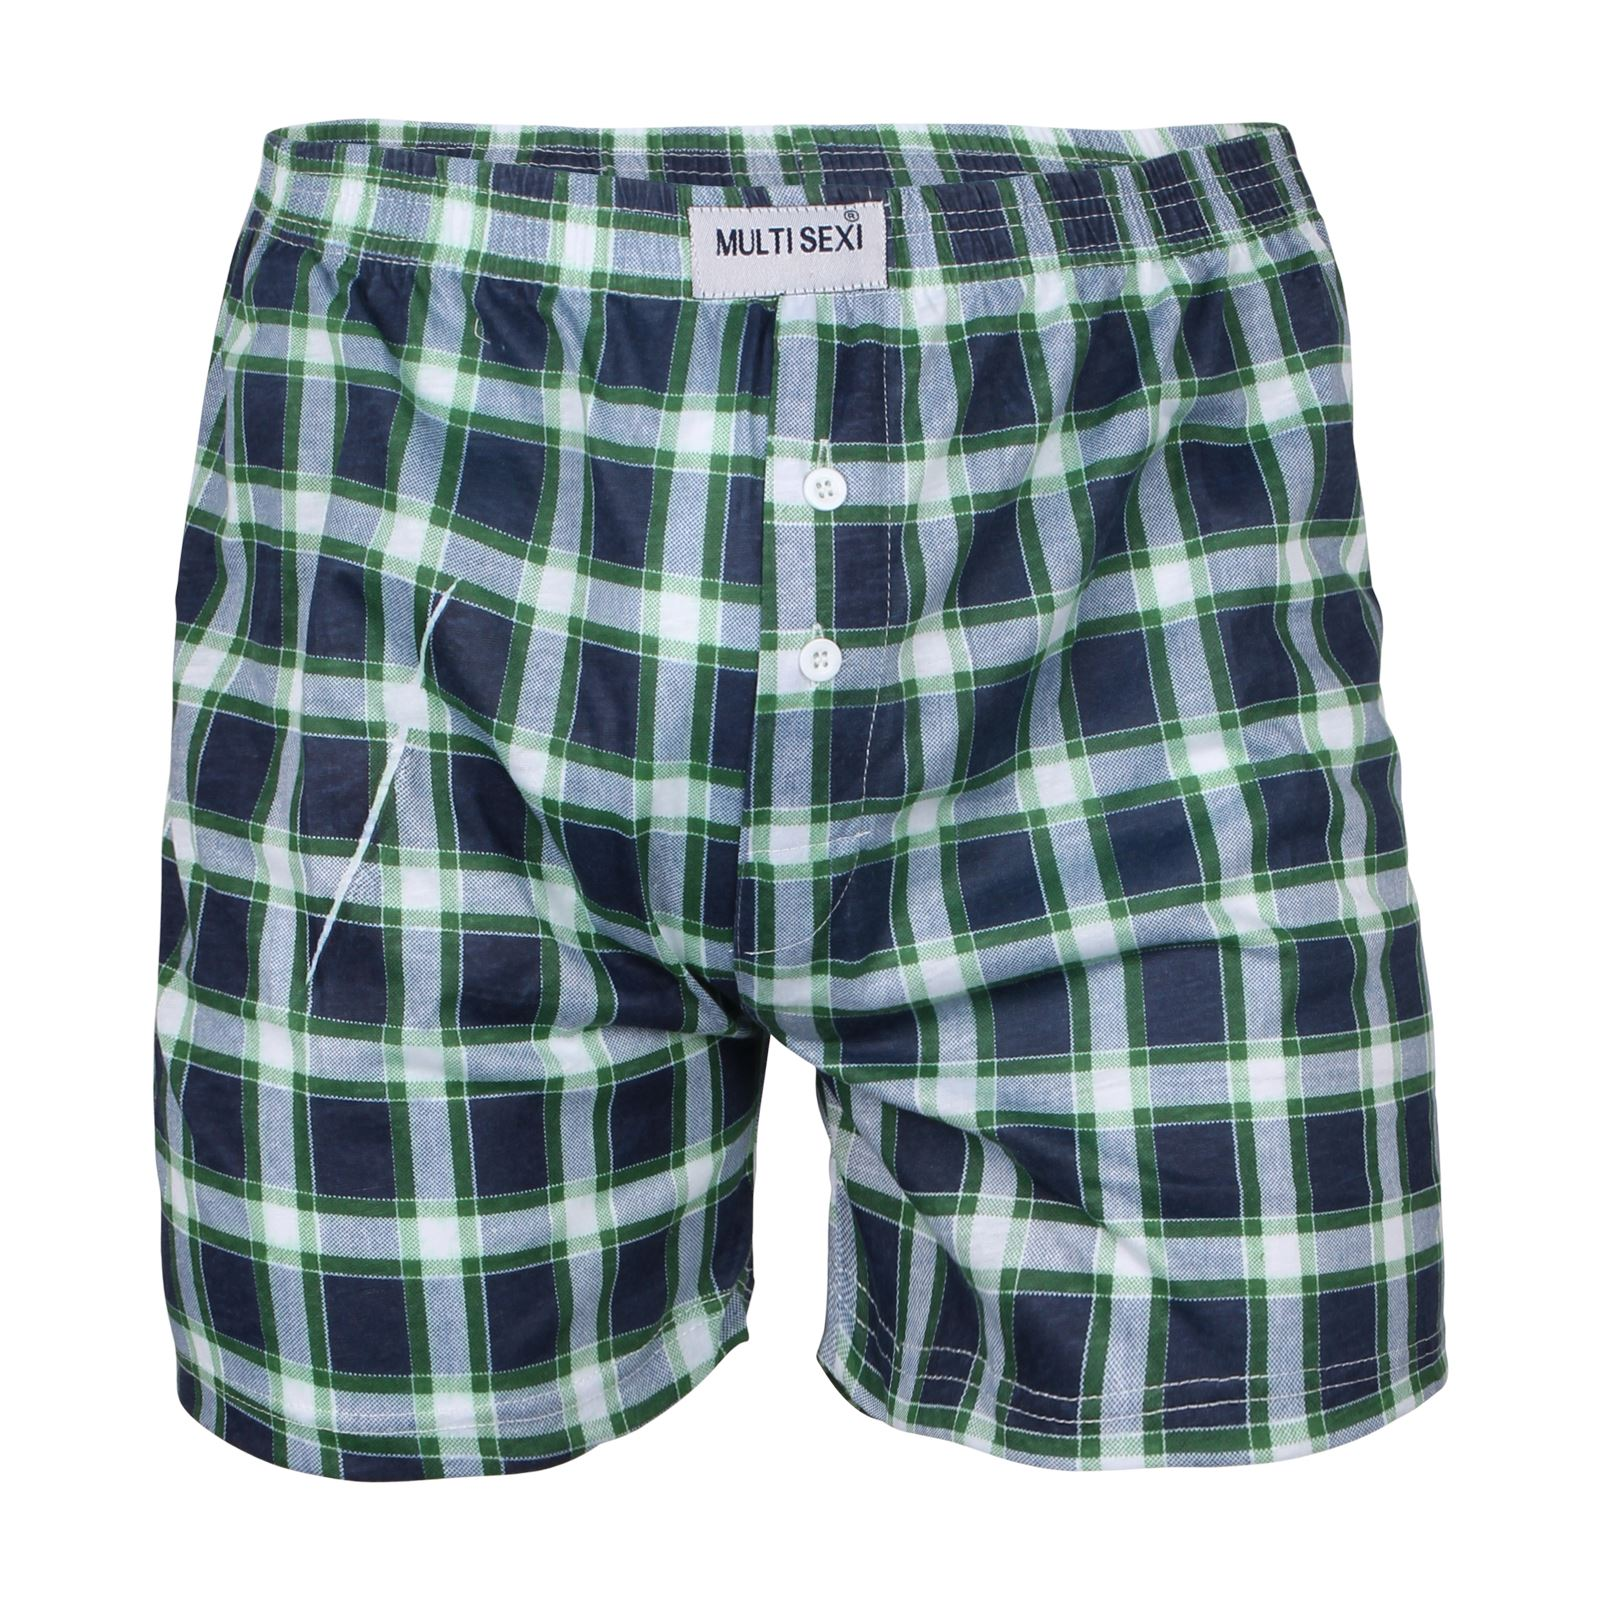 Men's Designer Boxer Briefs, Trunks & Boxer Shorts Department Info VOCLA has over styles of men's boxers, boxer briefs, trunks & boxer shorts from top global brands, fashion and designer boxers, including boxers in funky colours, boxers to reshape your butt and enhance your pouch size or space.